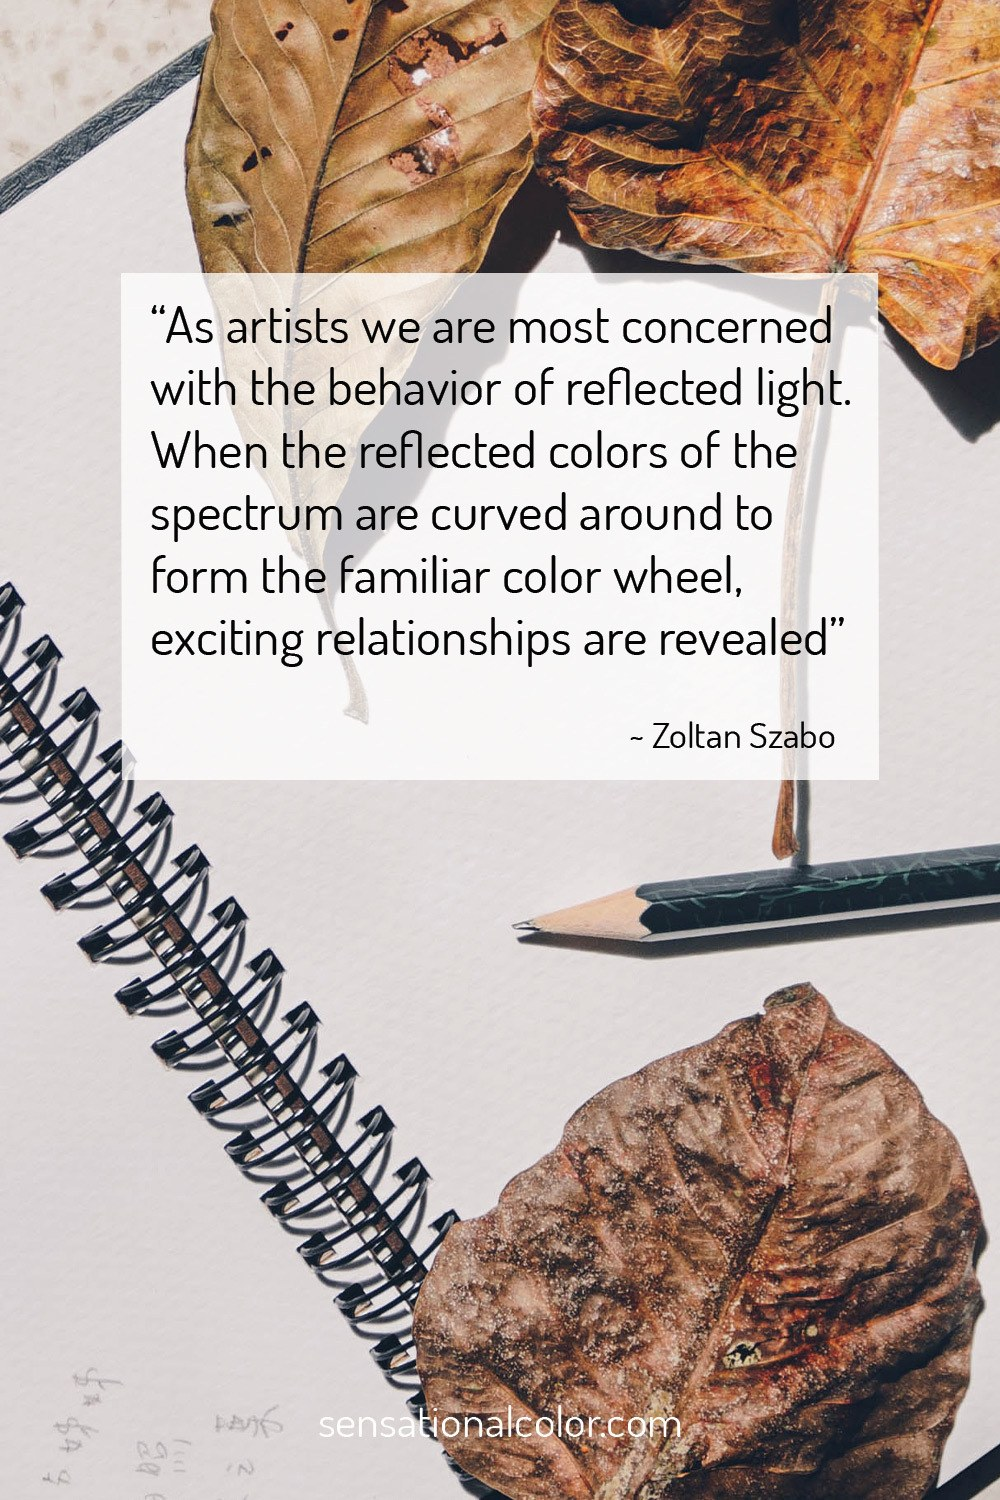 """As artists we are most concerned with the behavior of reflected light. When the reflected colors of the spectrum are curved around to form the familiar color wheel, exciting relationships are revealed."" - Zoltan Szabo"